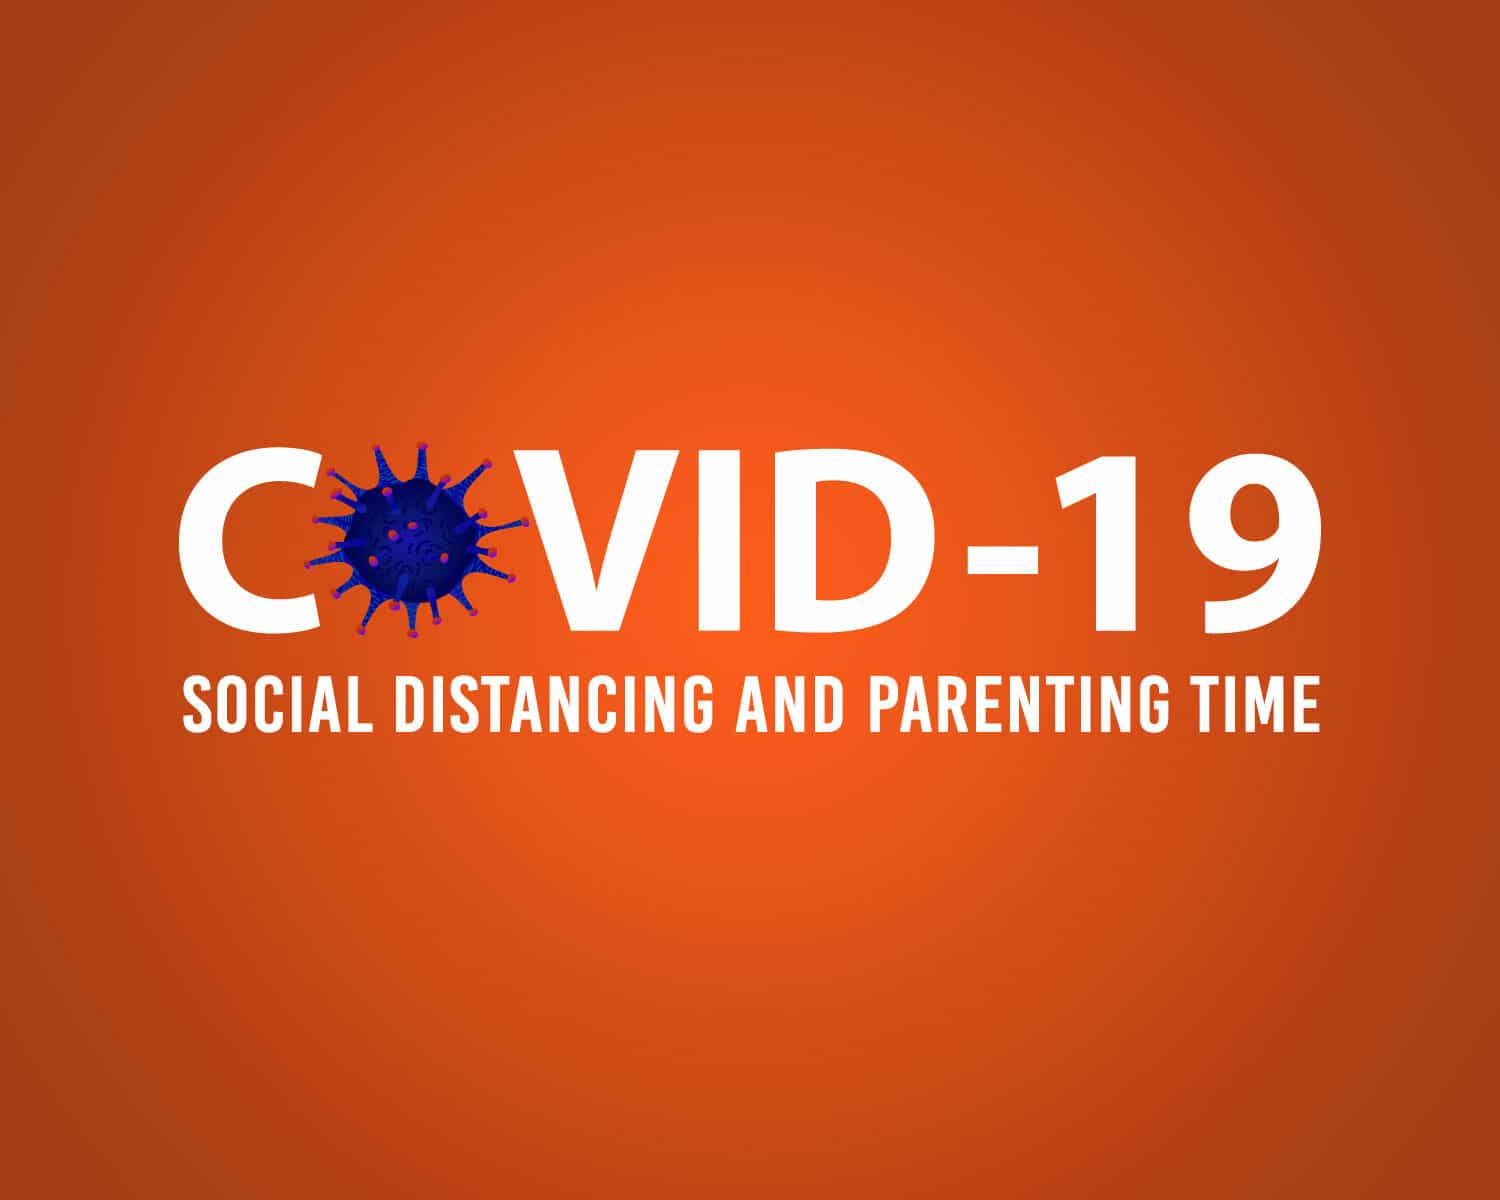 social distancing and parenting time